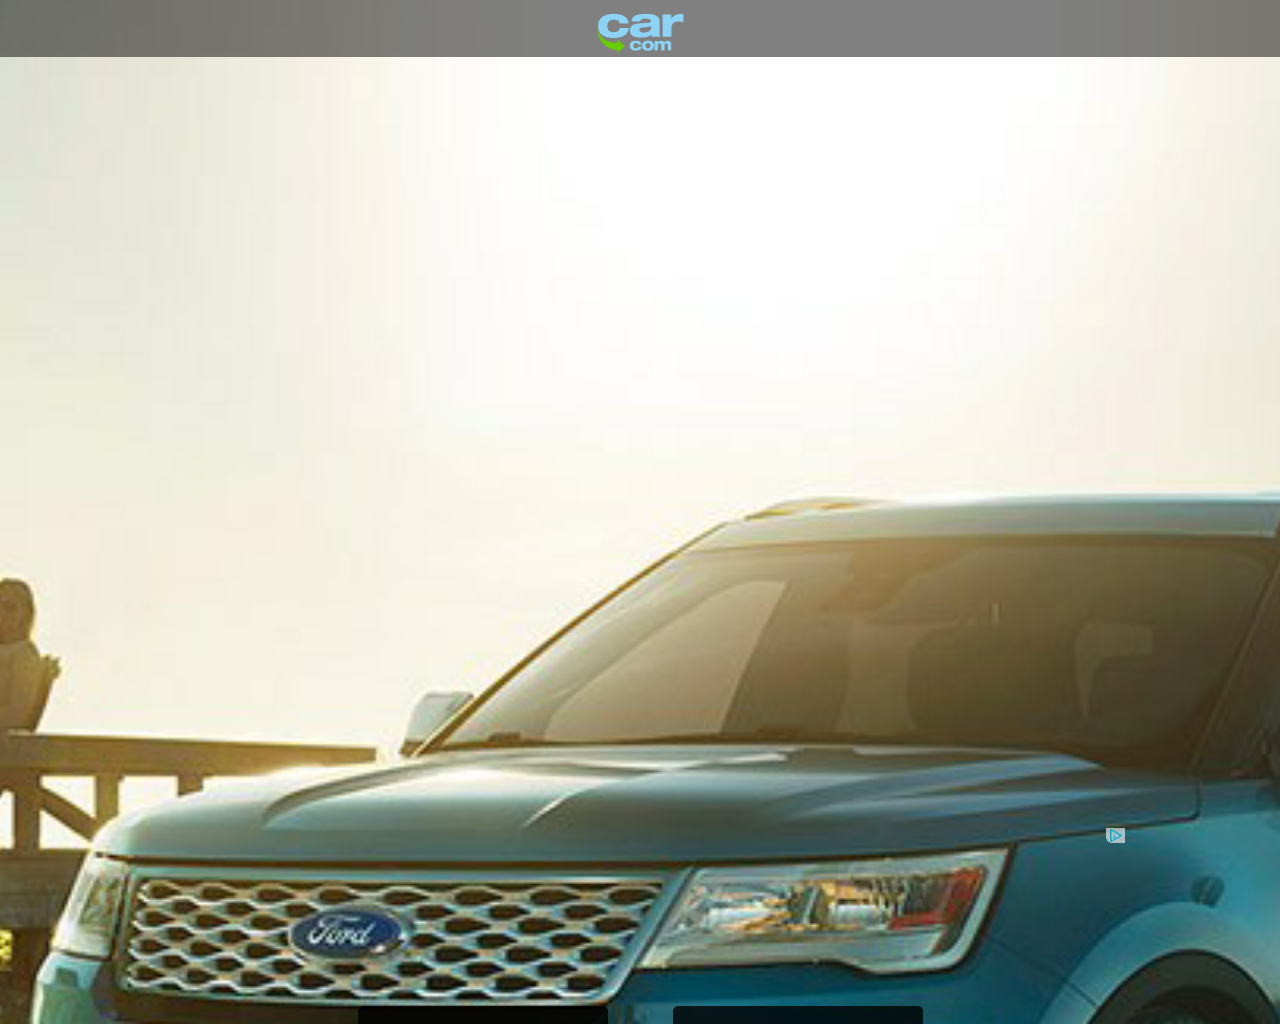 Car.com-Advertising-Reviews-Pricing